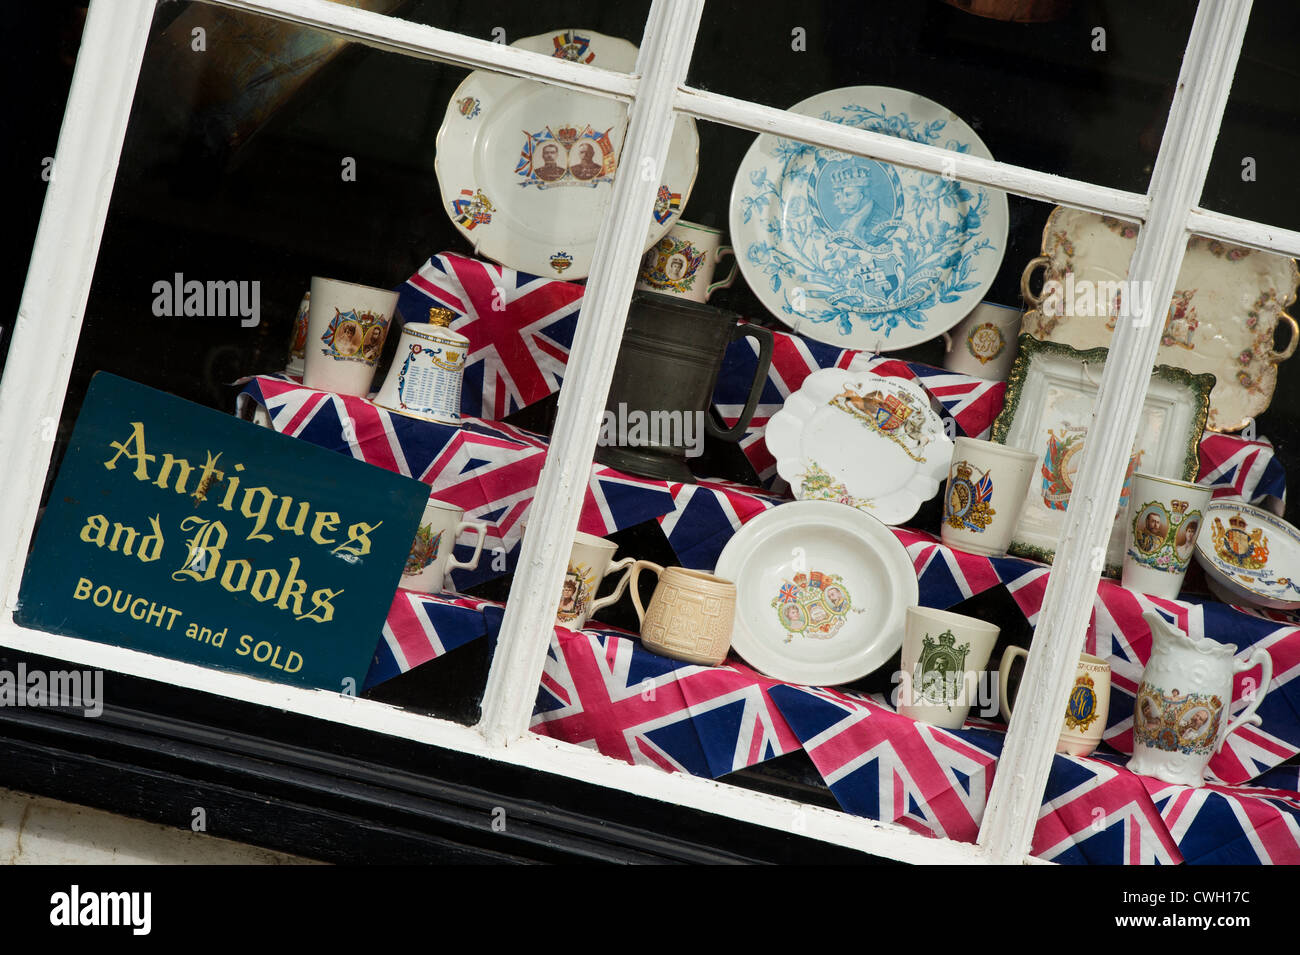 Antique shop with Royal memorabilia and union jacks in the window. Presteigne,  Powys, Wales Stock Photo